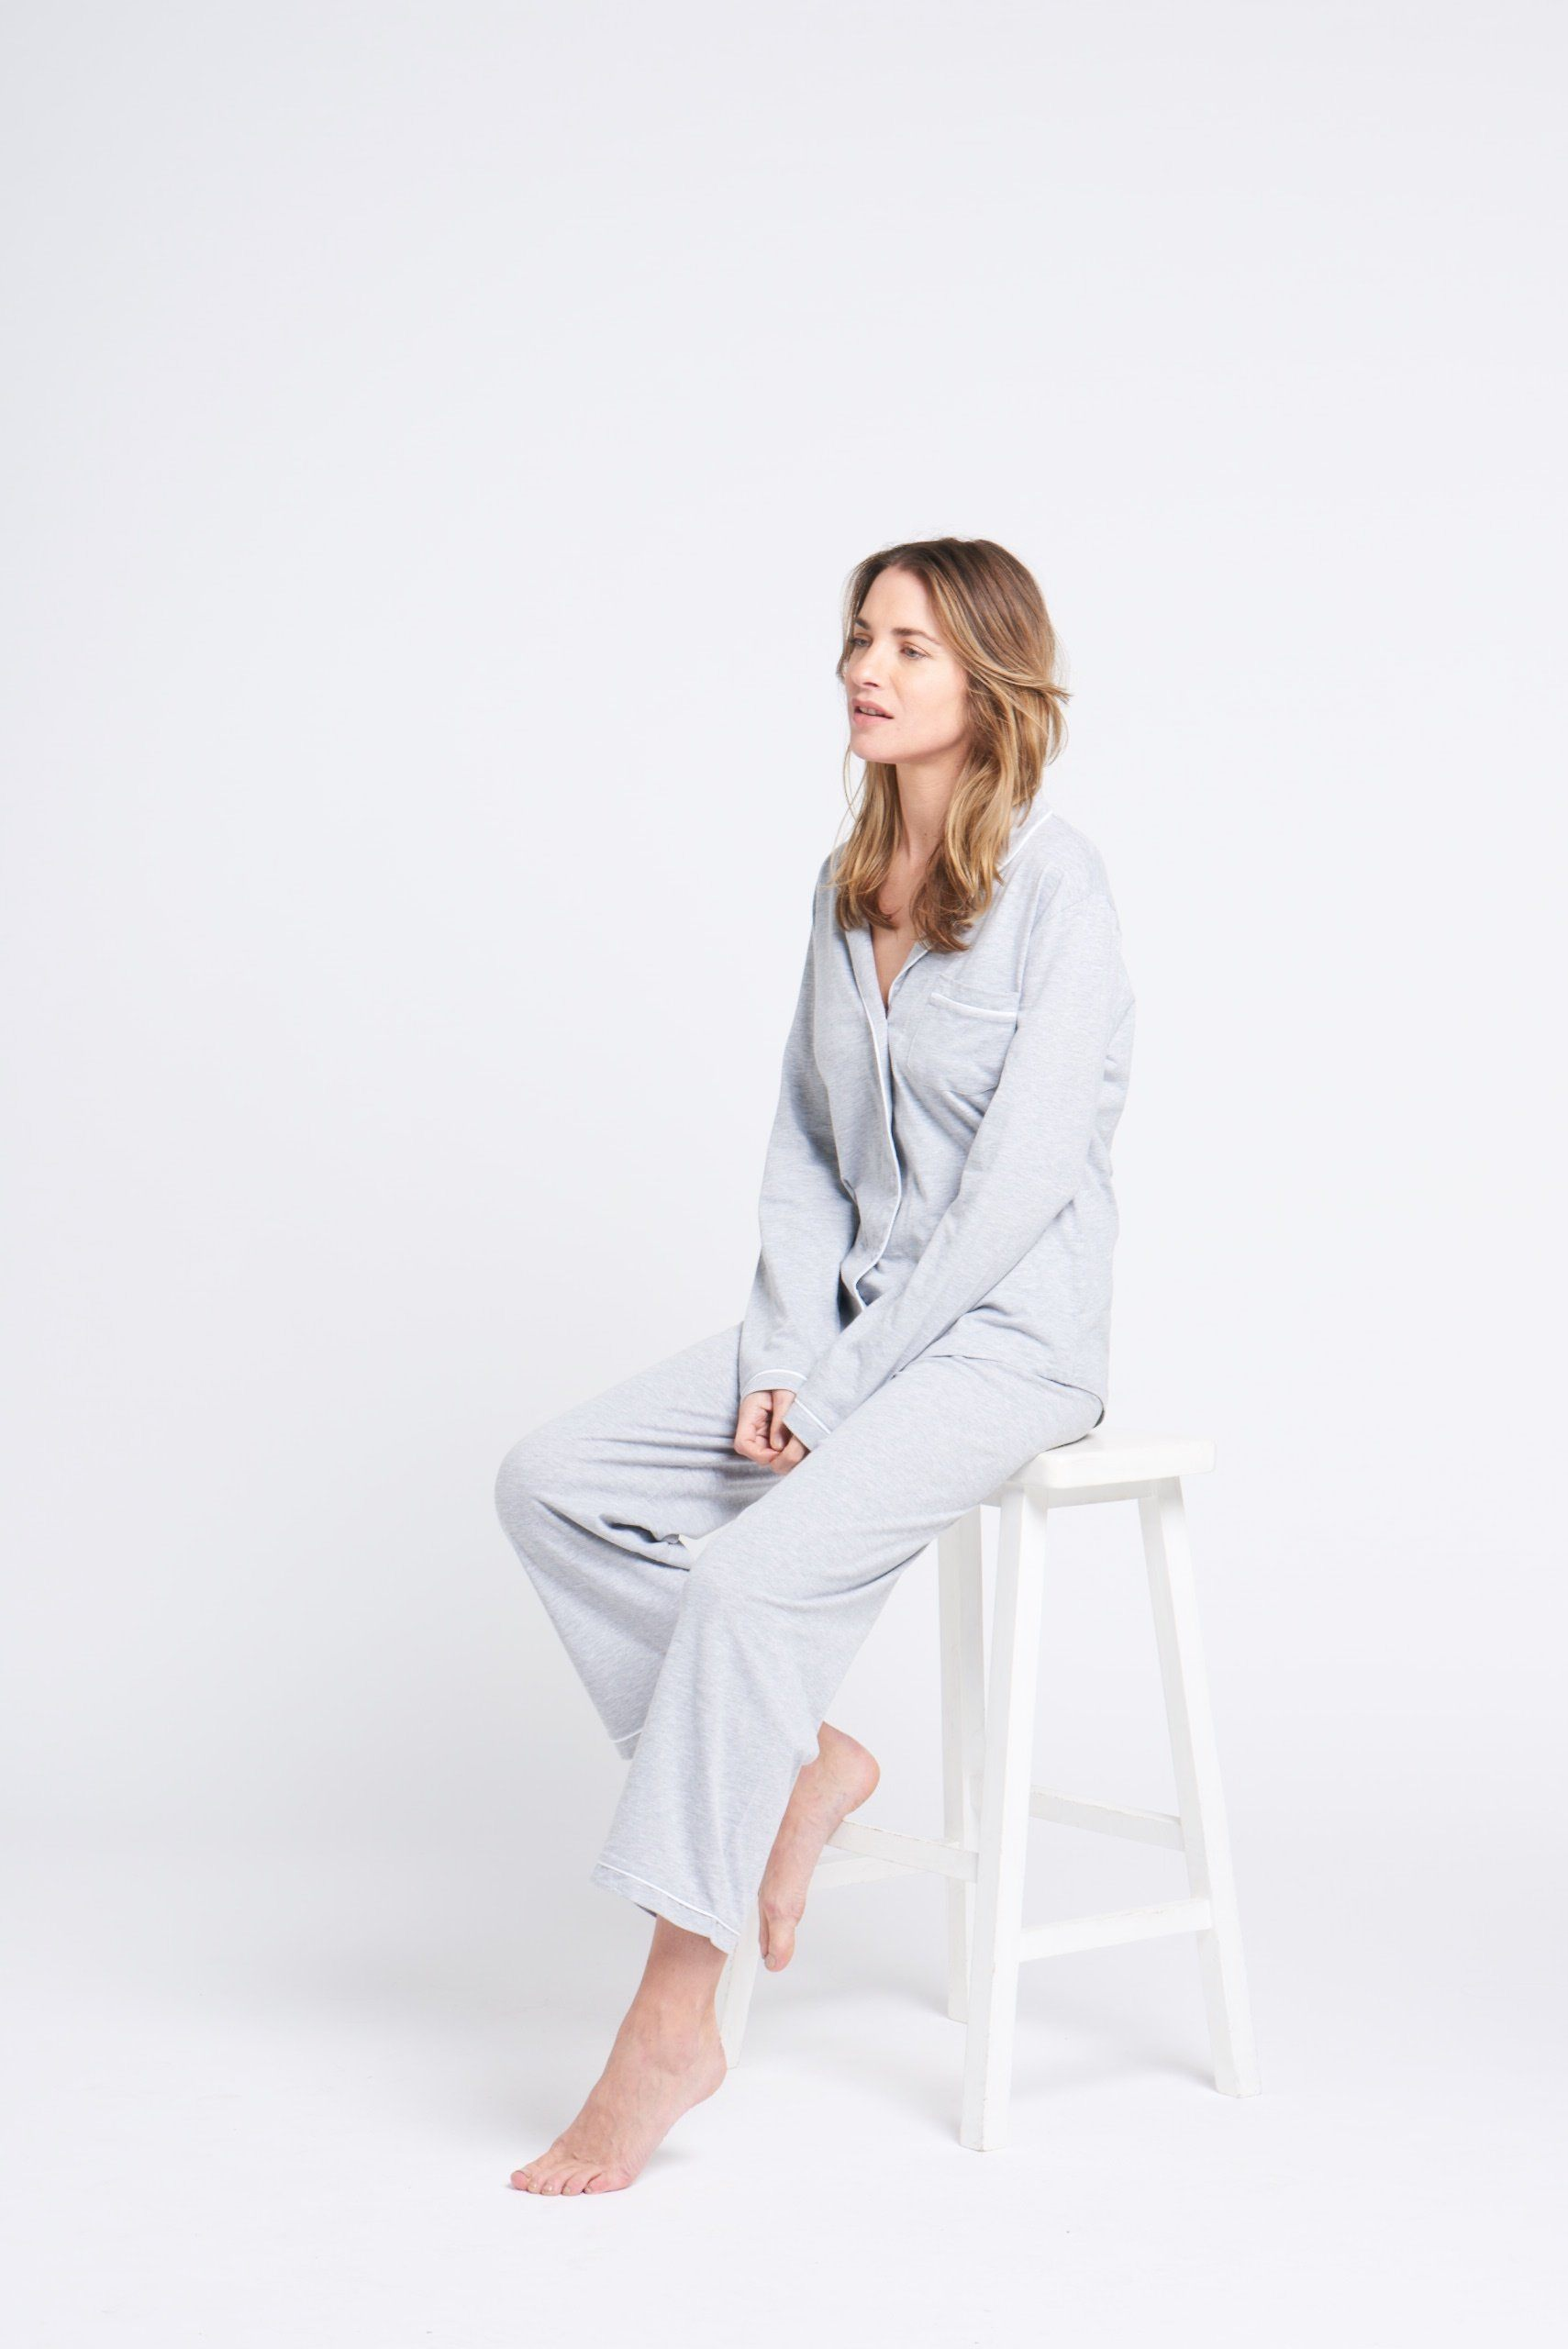 Portsea PJ Set long Grey pj's Organic Crew